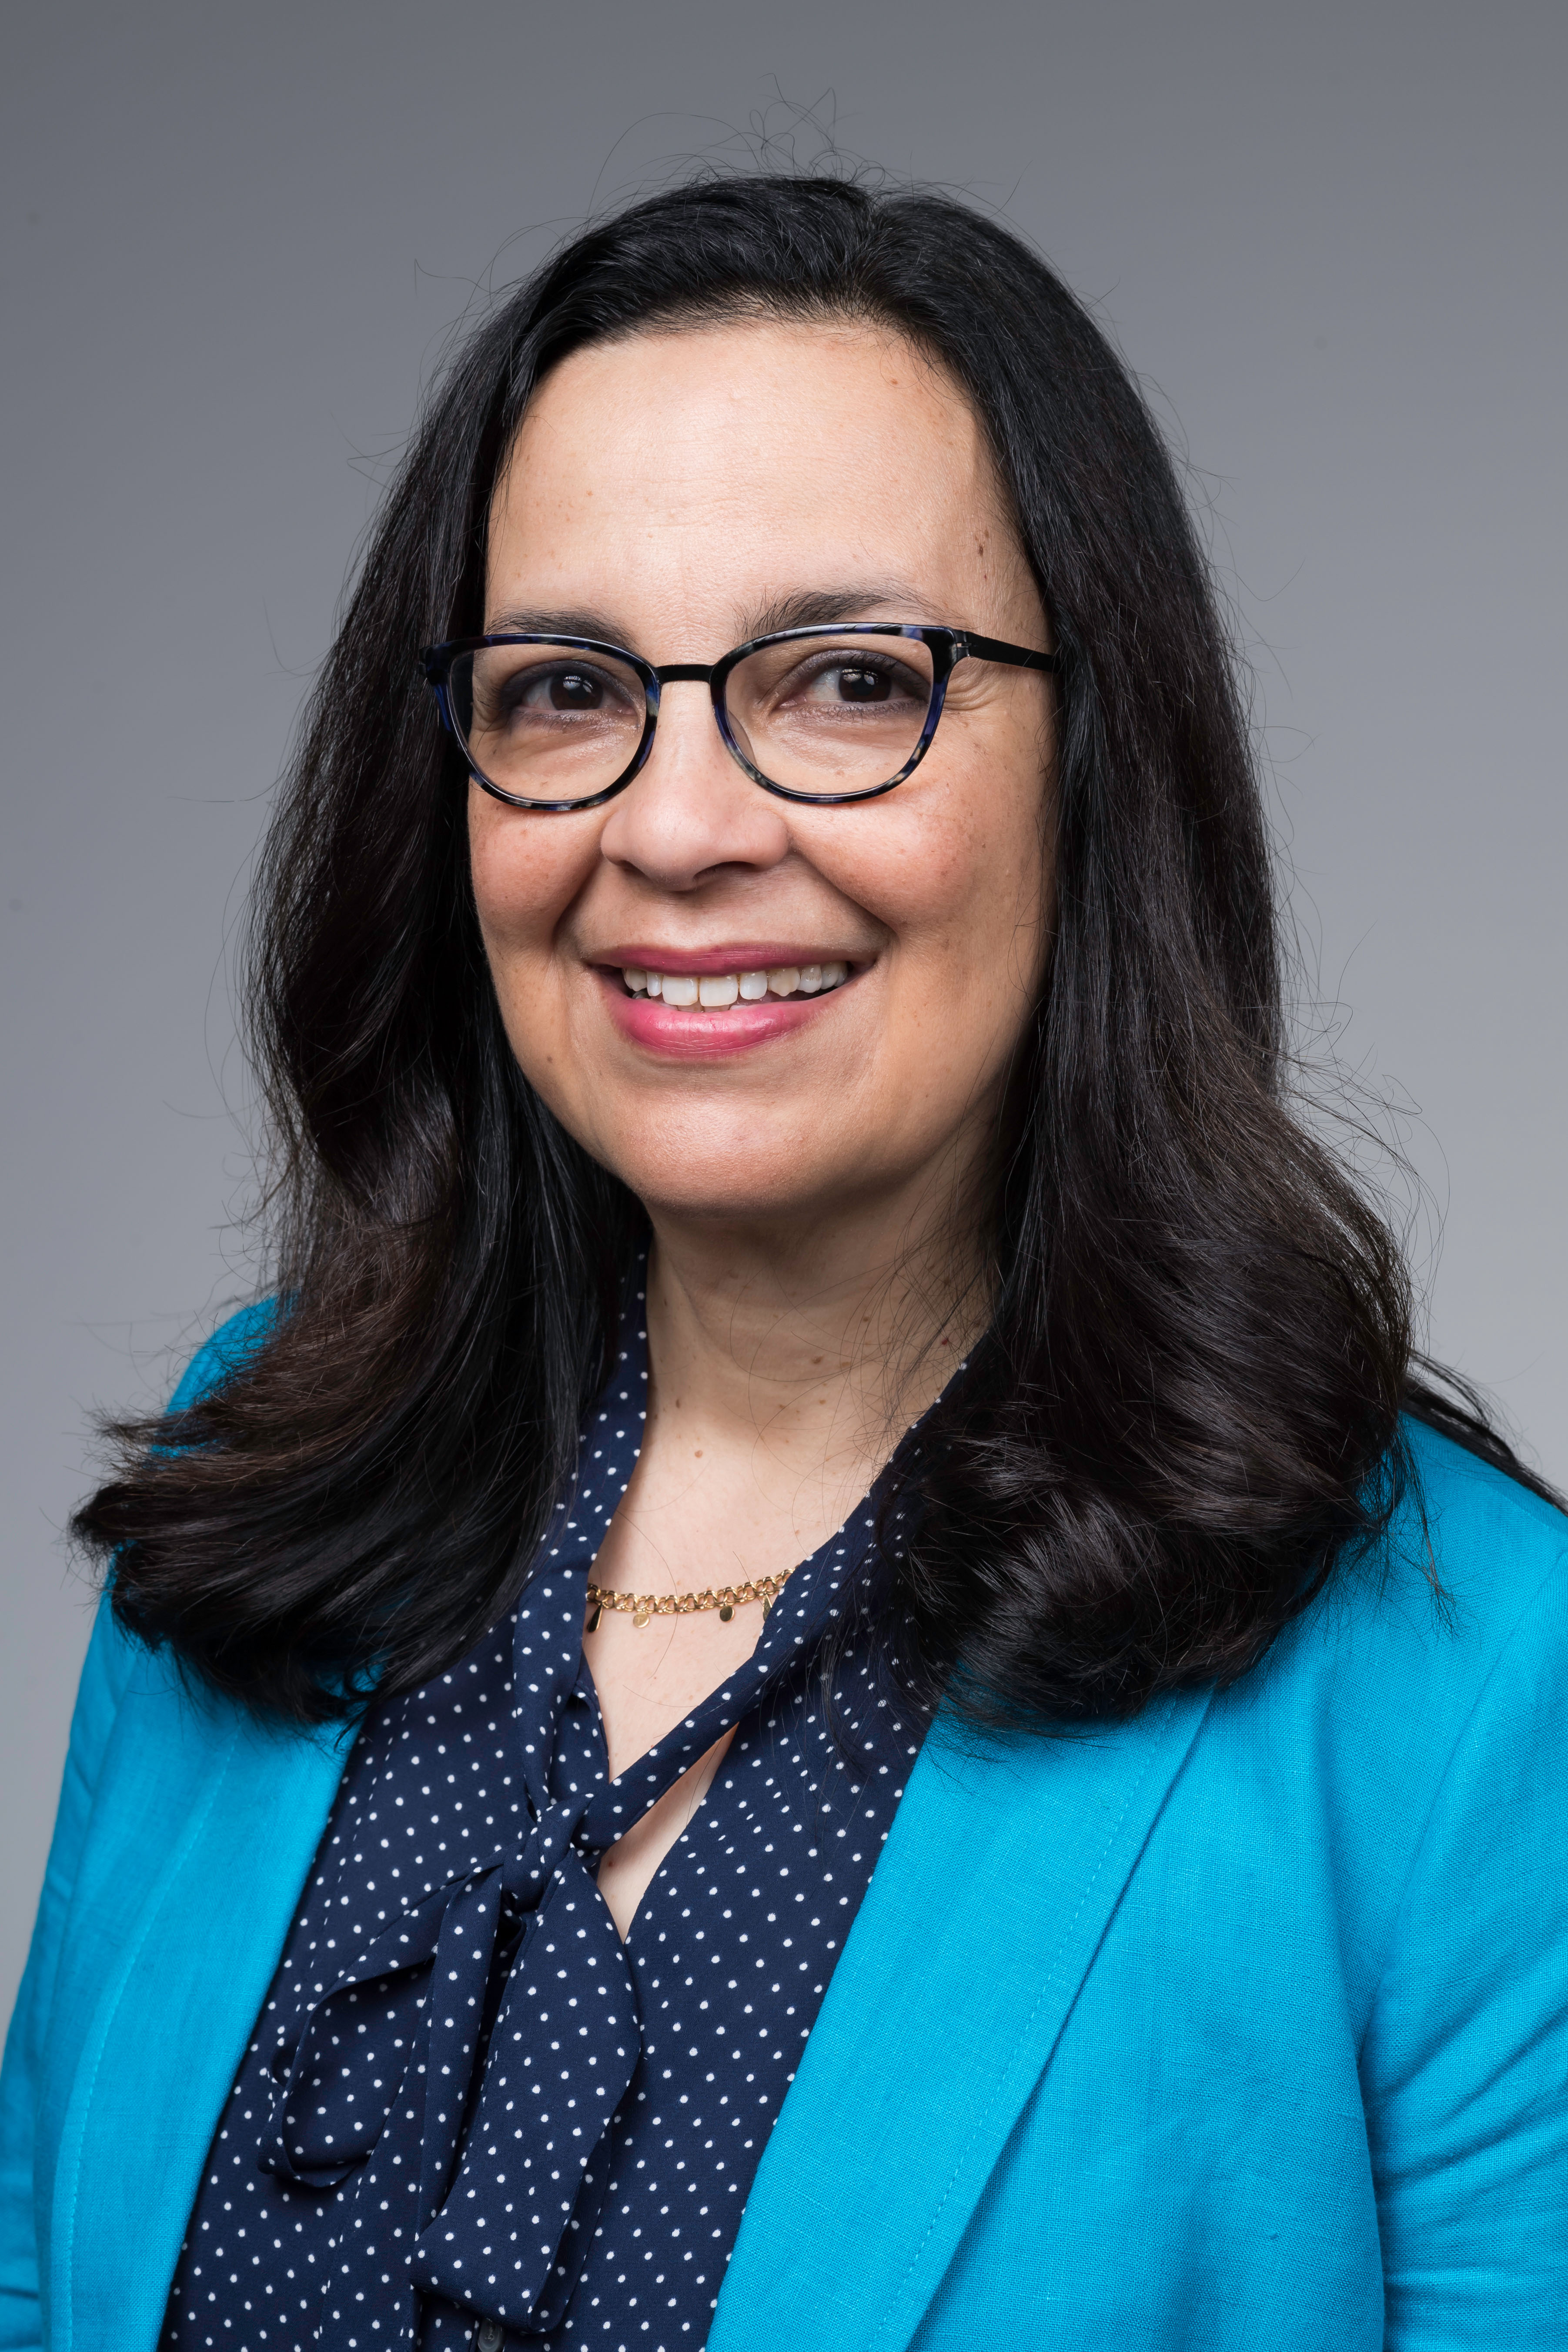 Portrait of Mercedes Ramírez Fernández, University of Rochester VP for Equity and Inclusion